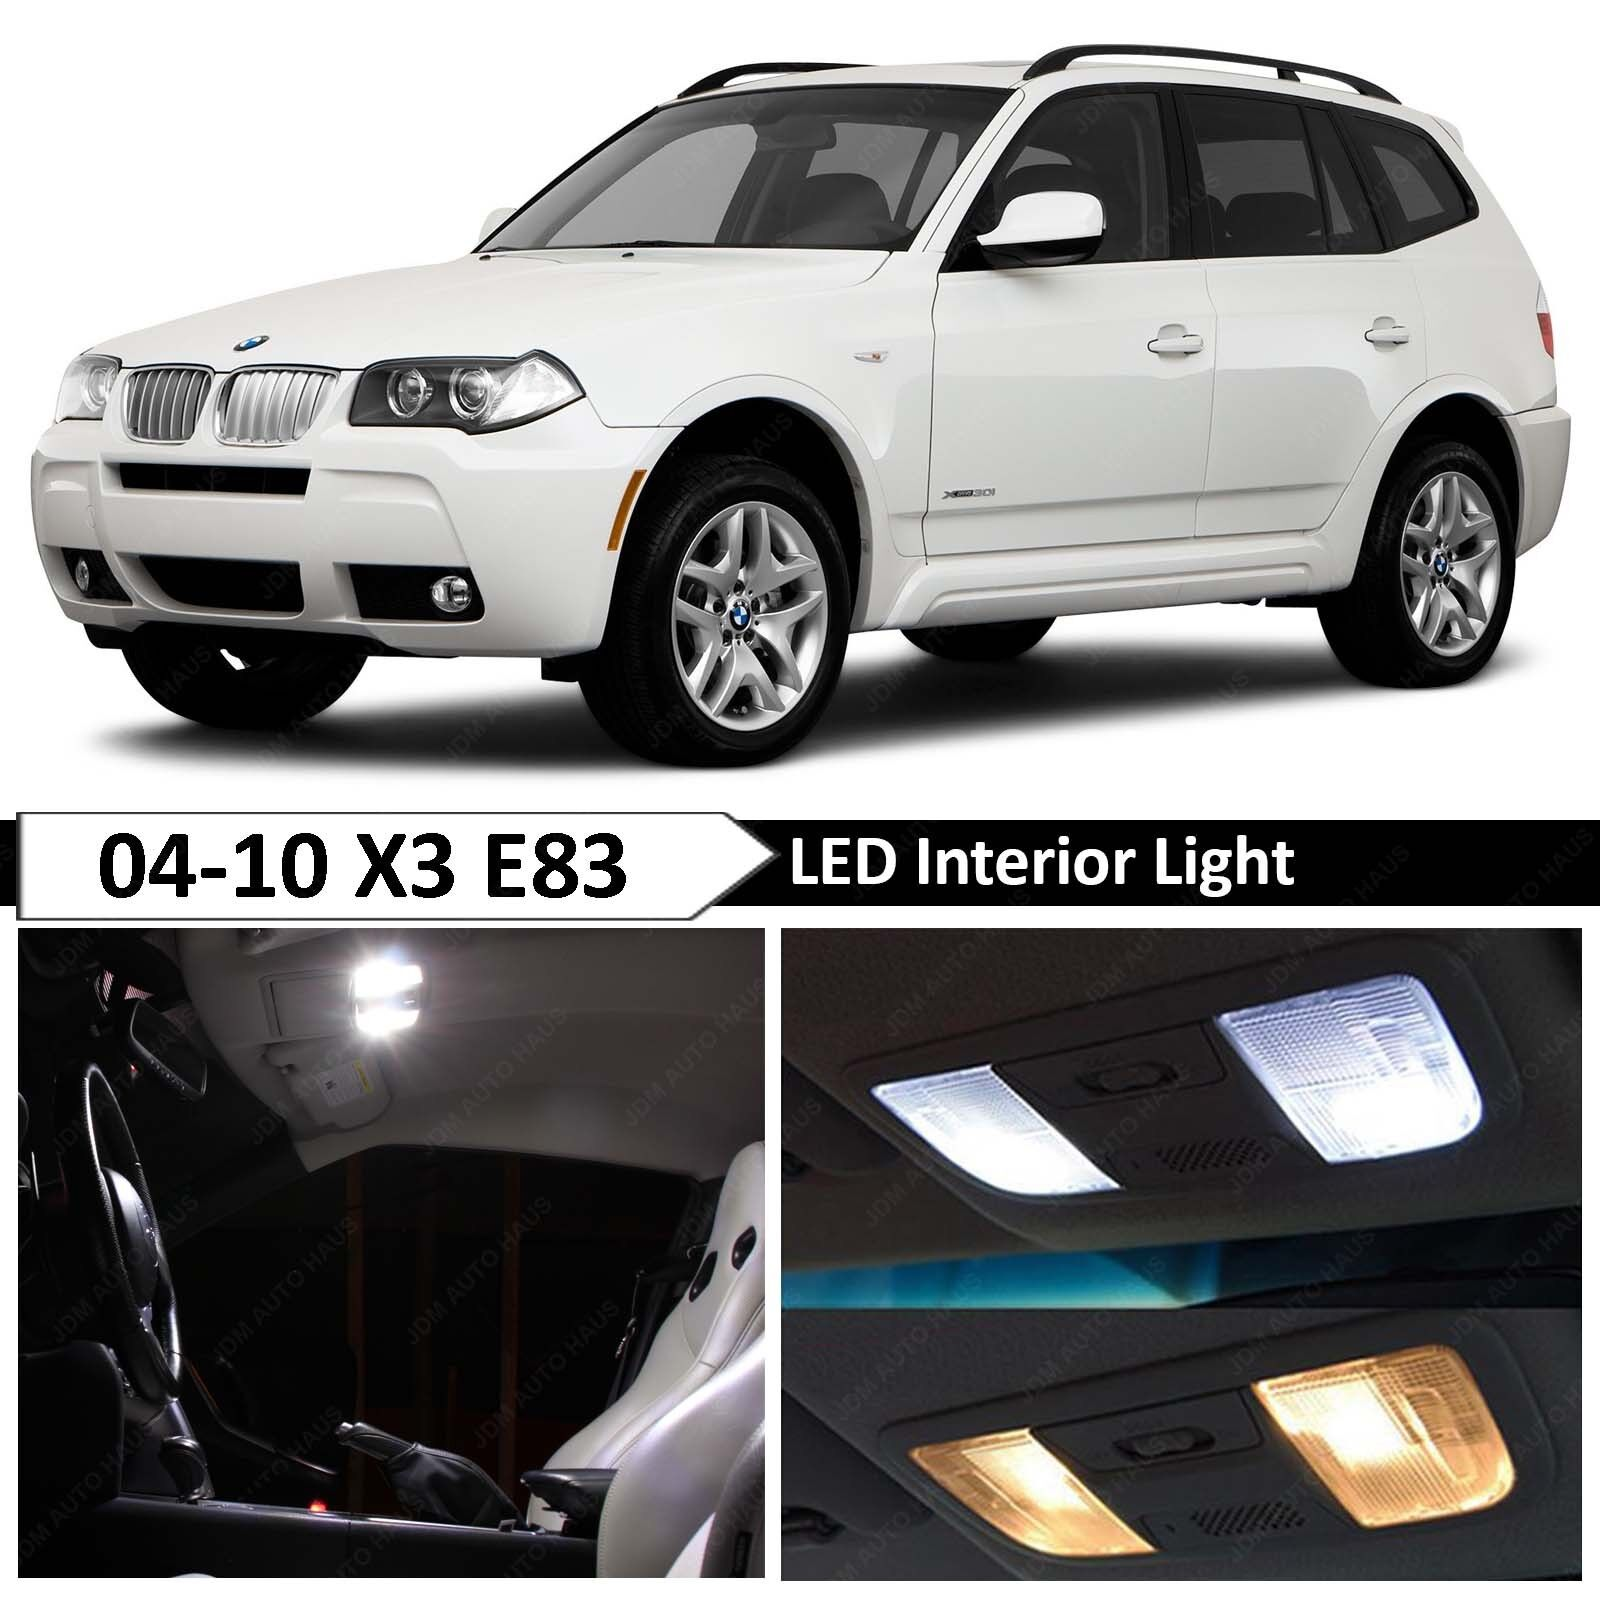 hight resolution of details about 13 pcs white error free interior led light package kit fit 2004 2010 bmw x3 e83